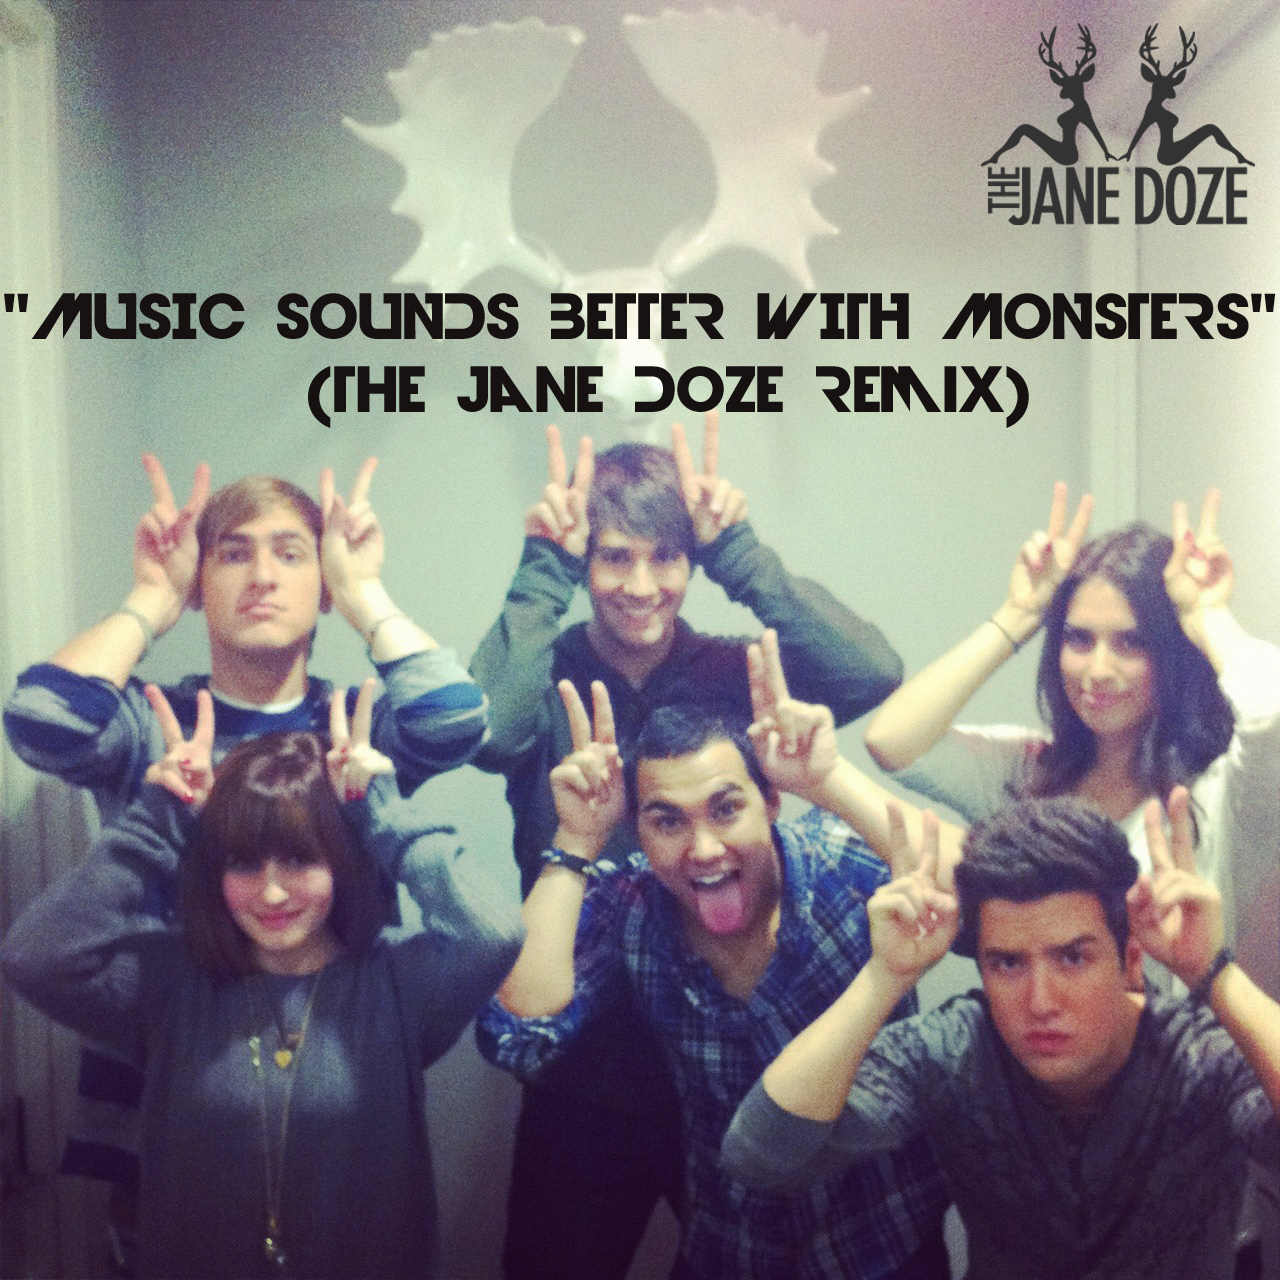 Music Sounds Better With Monsters (BTR vs Skrillex) – By TheJaneDoze